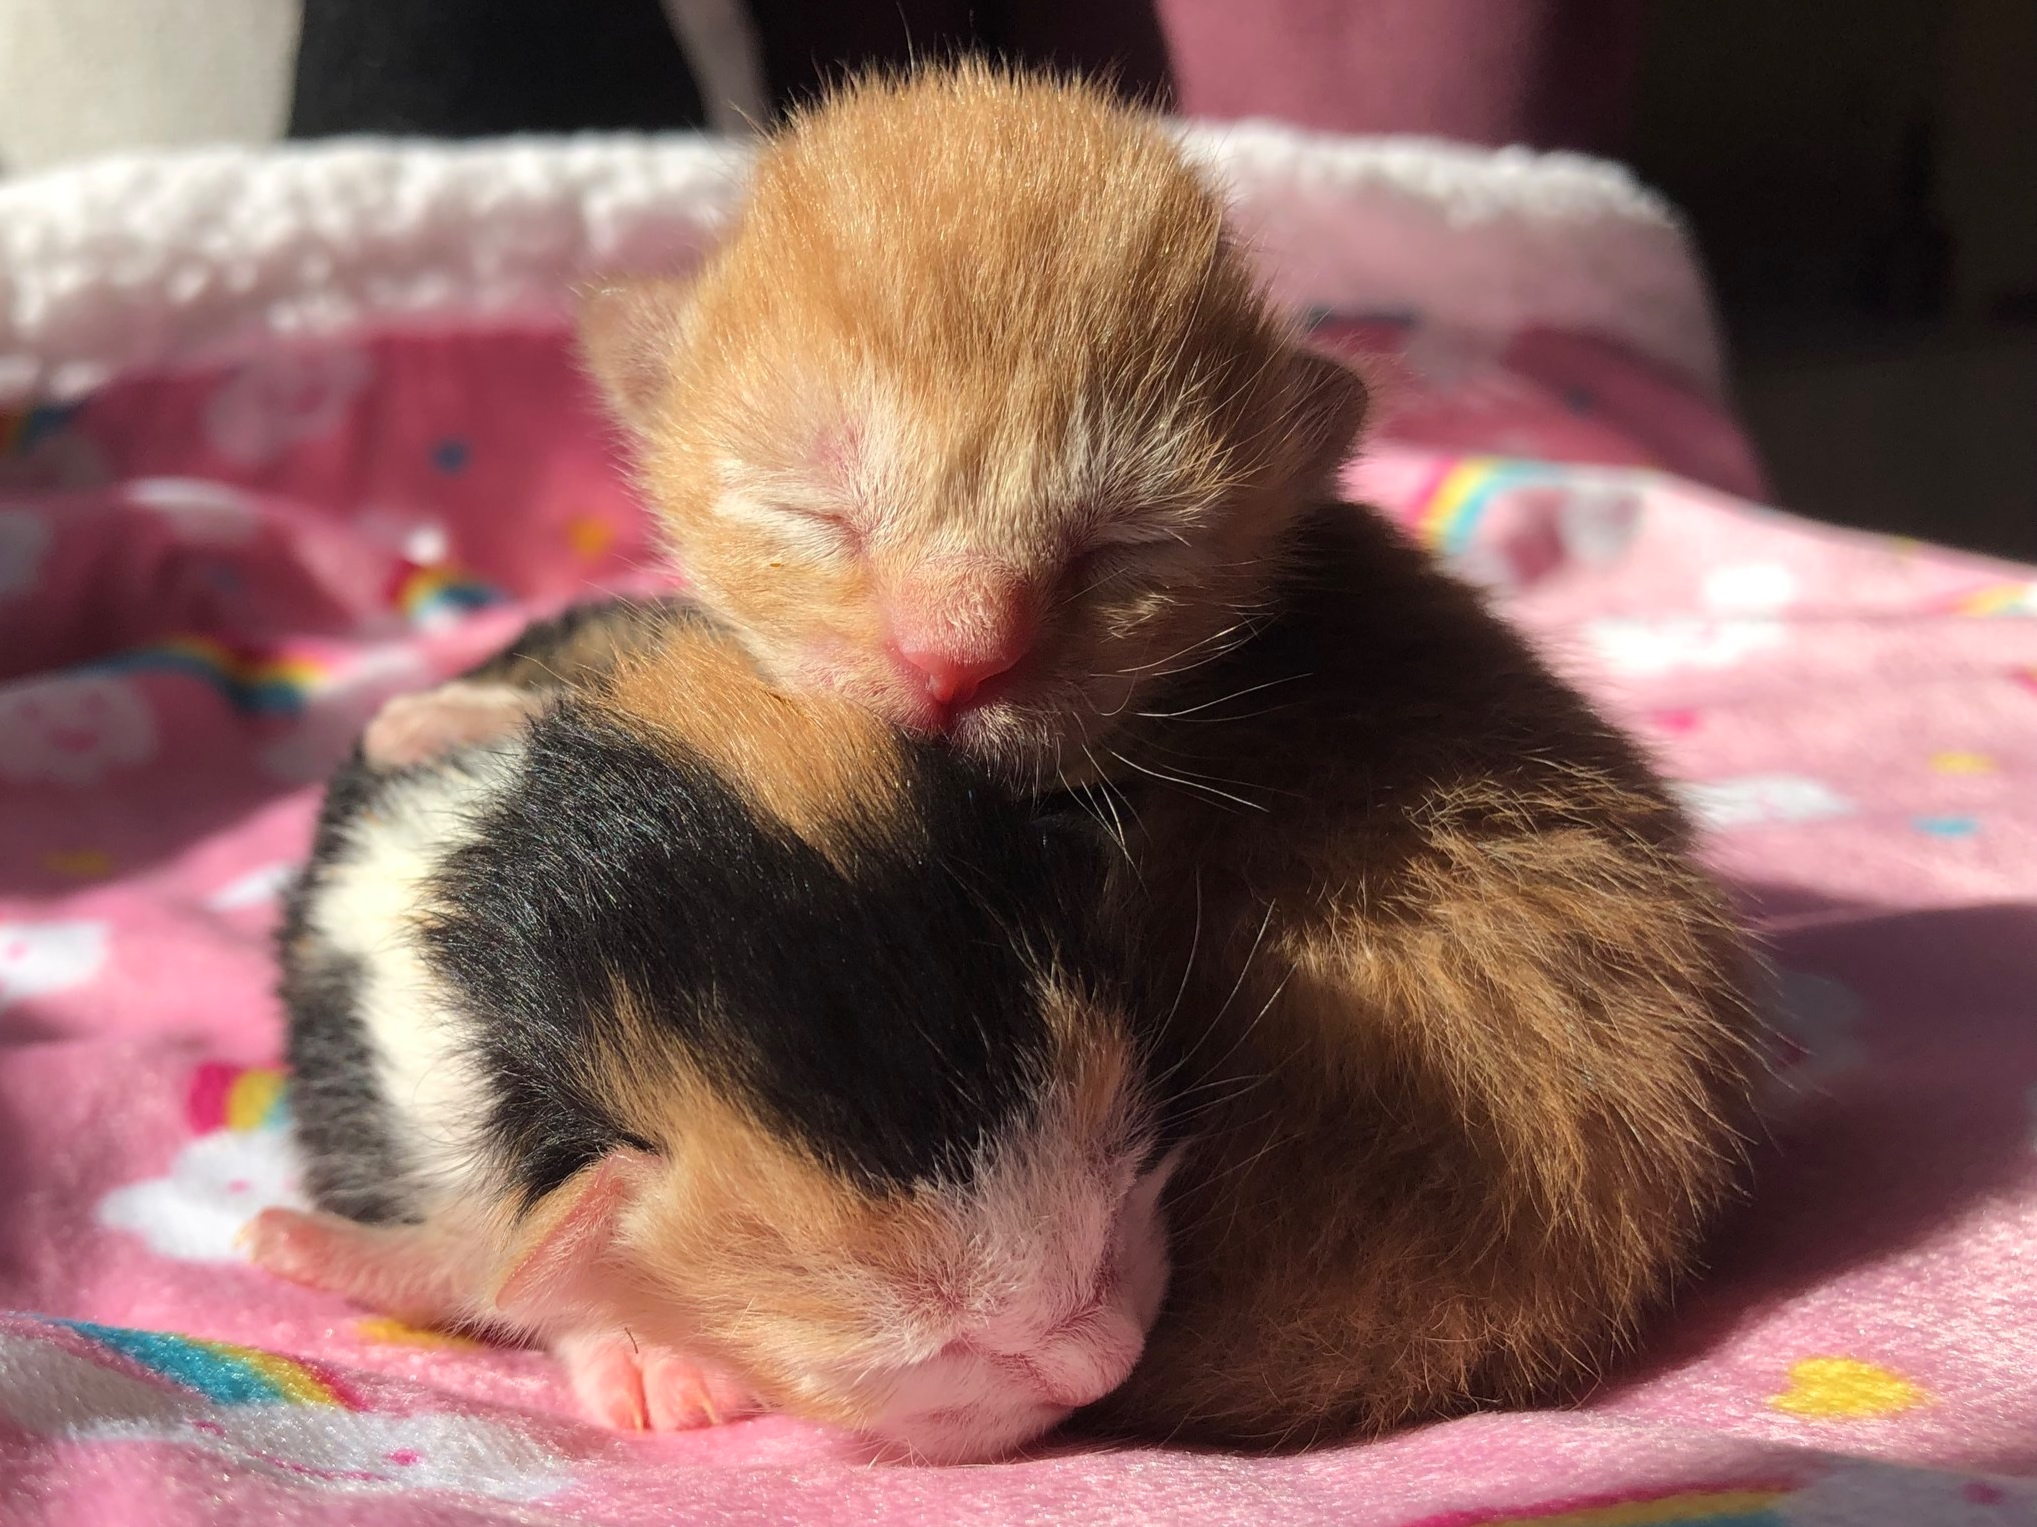 Prima and Nova - Renamed Cheddar and Biscuit